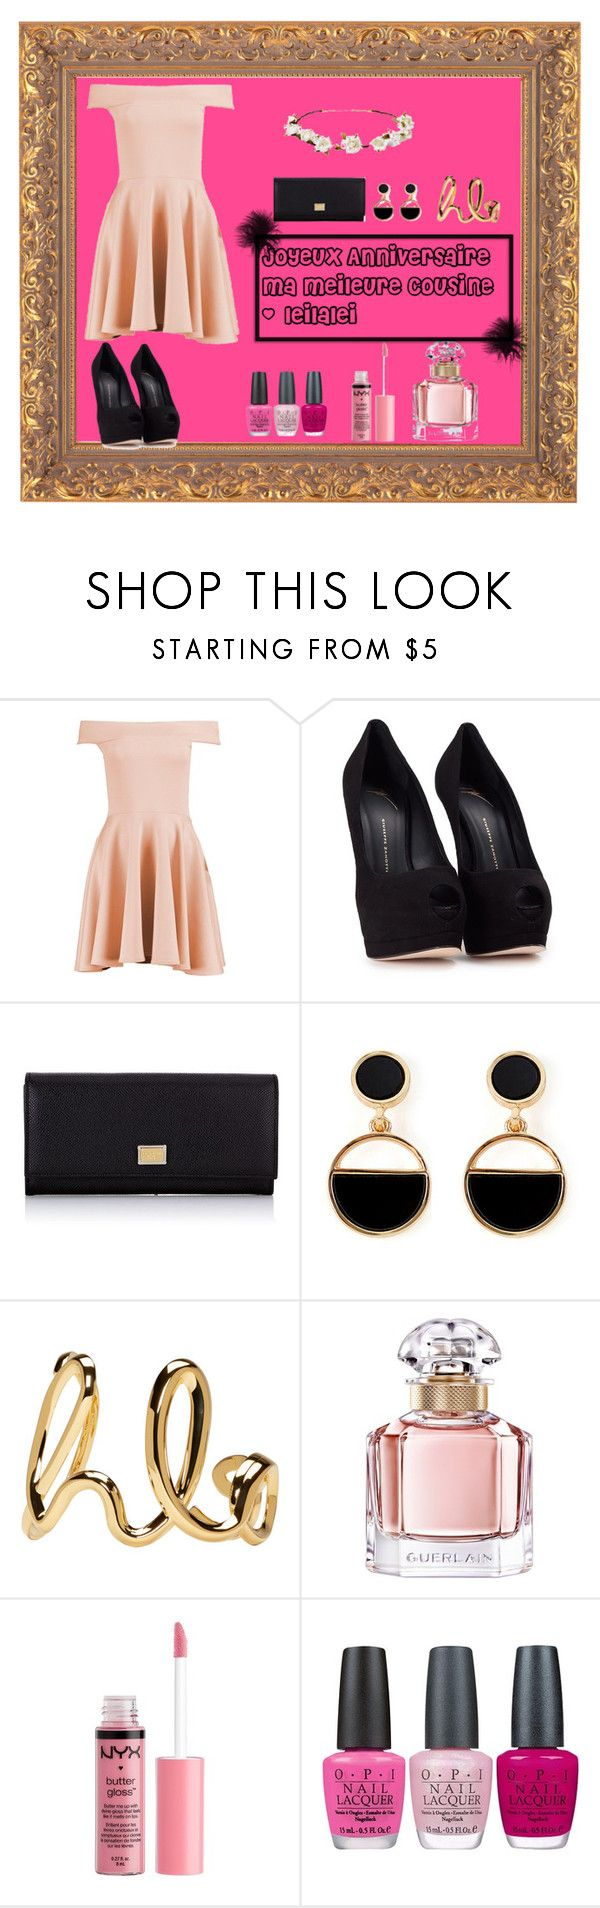 """""""Joyeux Anniversaire Ma Meilleure @leilalei"""" by lola-madridista ❤ liked on Polyvore featuring Boohoo, Giuseppe Zanotti, Dolce&Gabbana, Warehouse, Chloé, Guerlain, Charlotte Russe, OPI and Cult Gaia"""